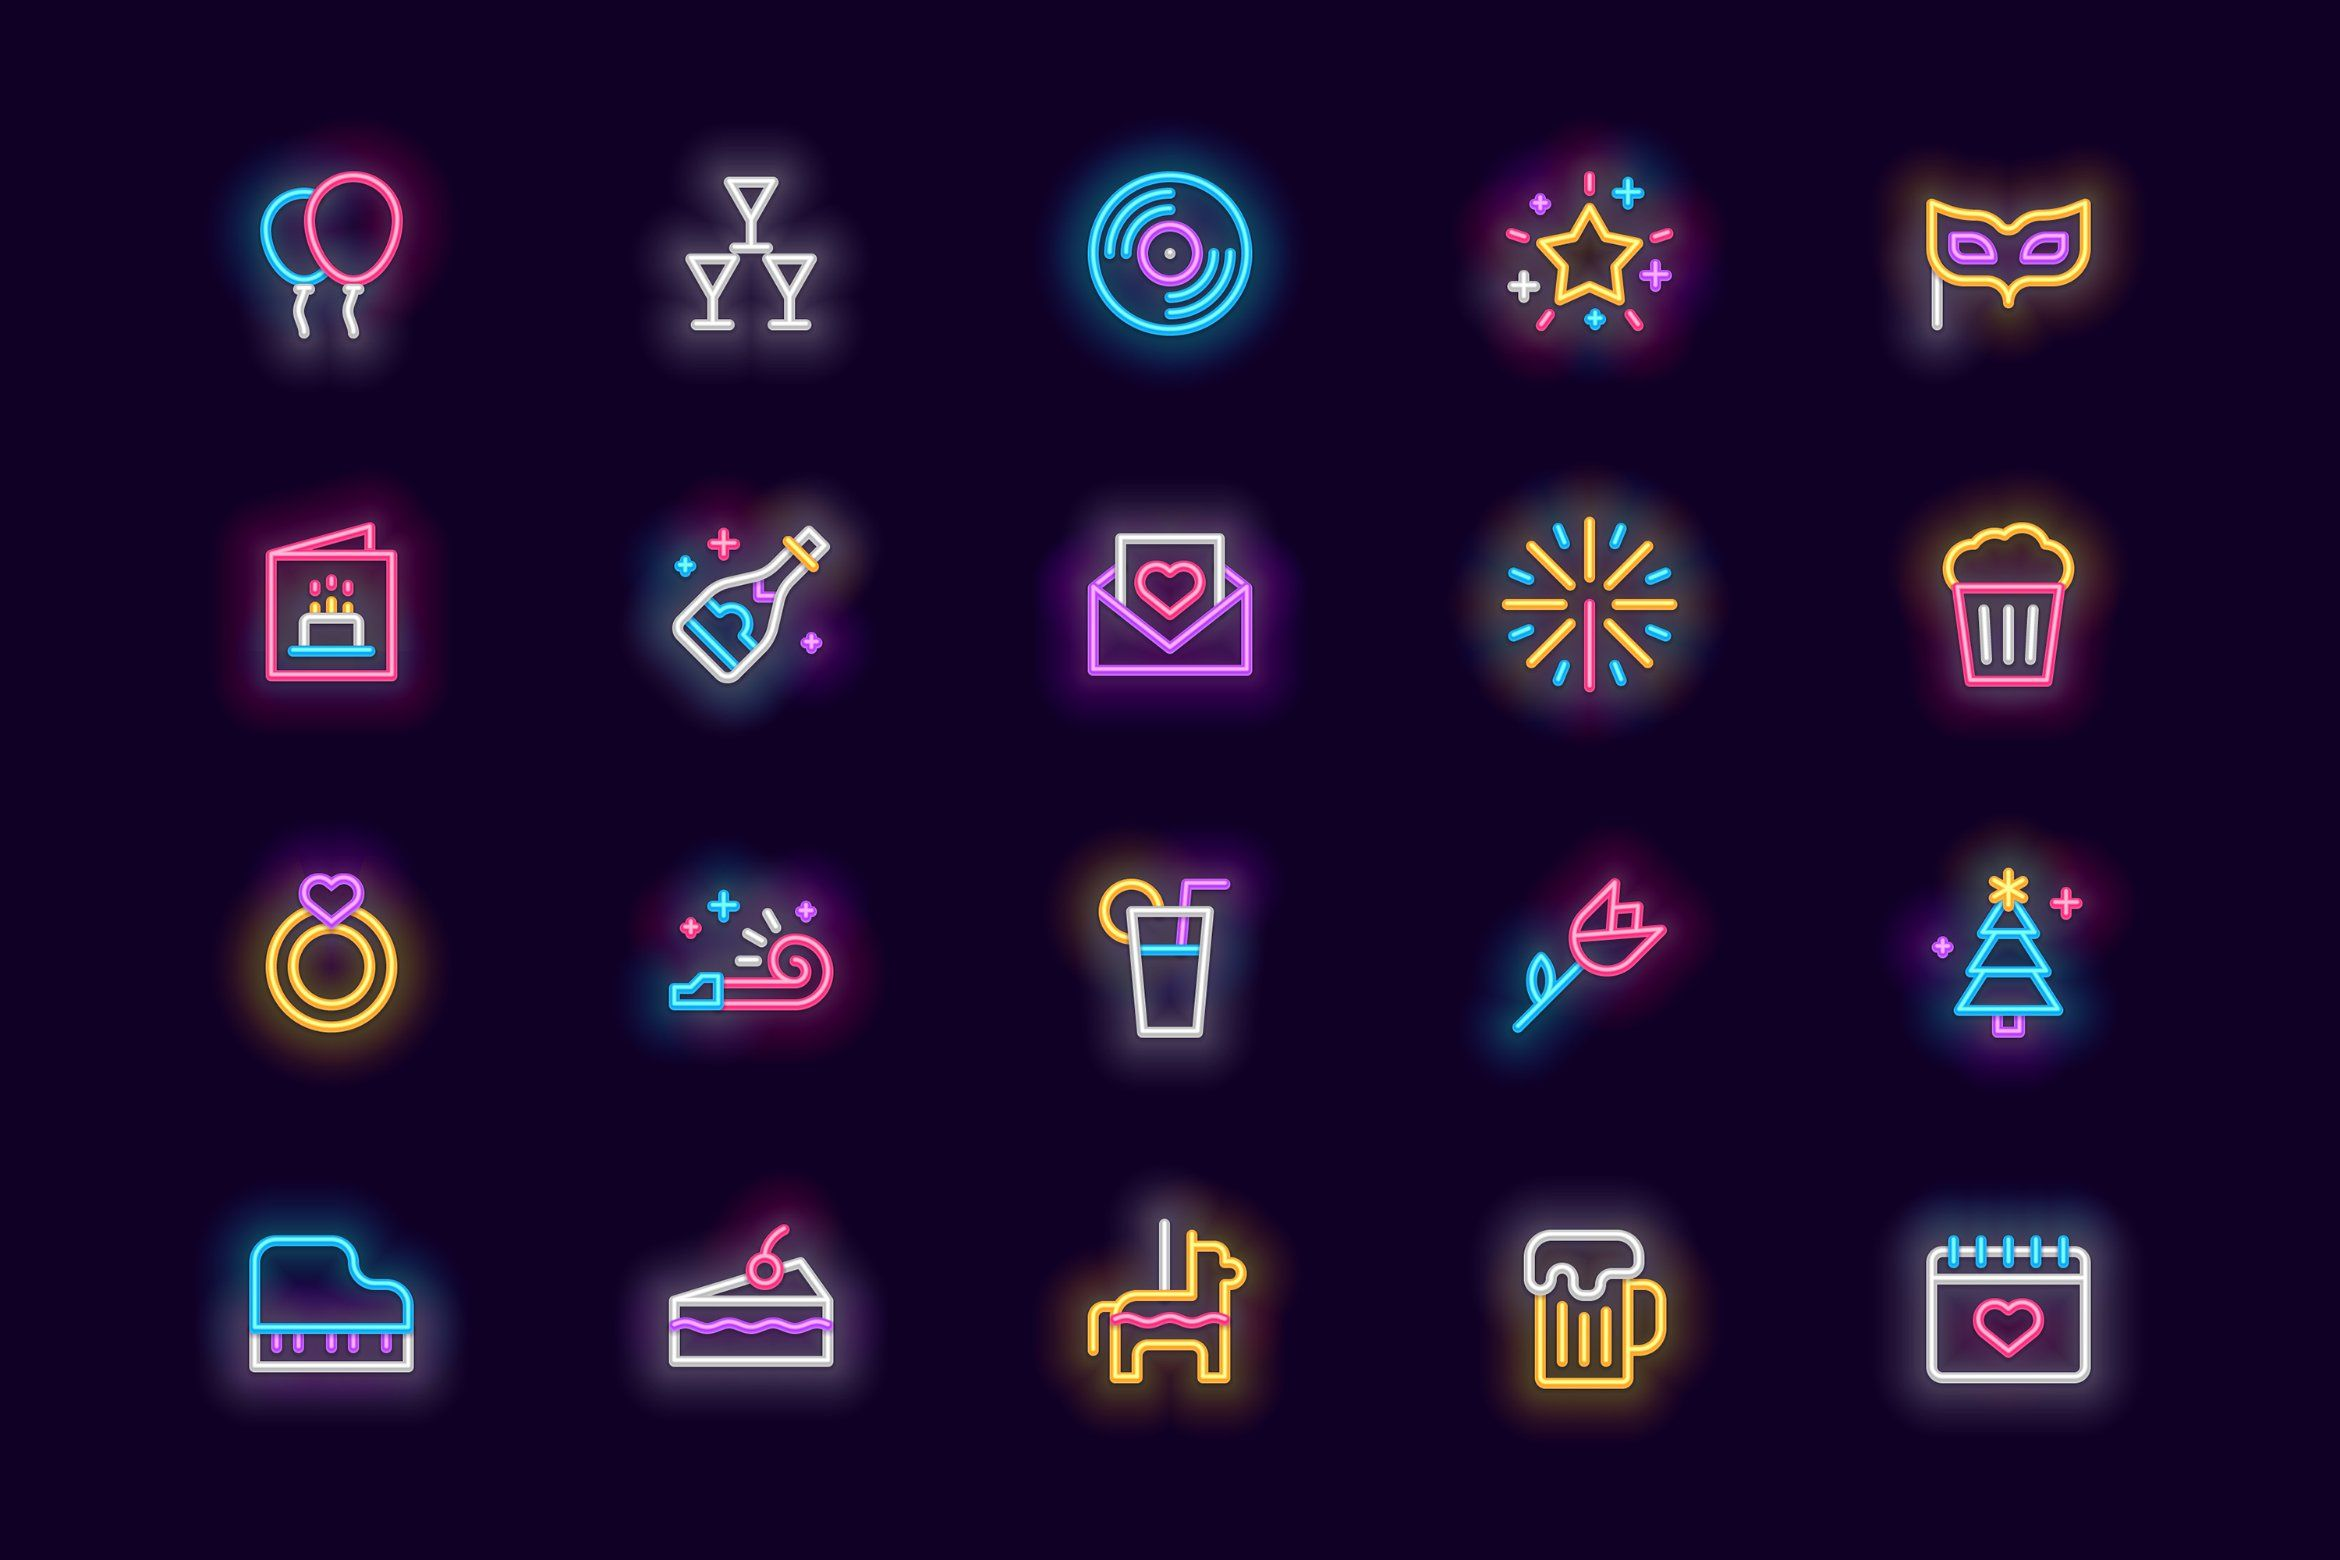 Party Neon Icons in 2020 Icon, Education icon, Neon